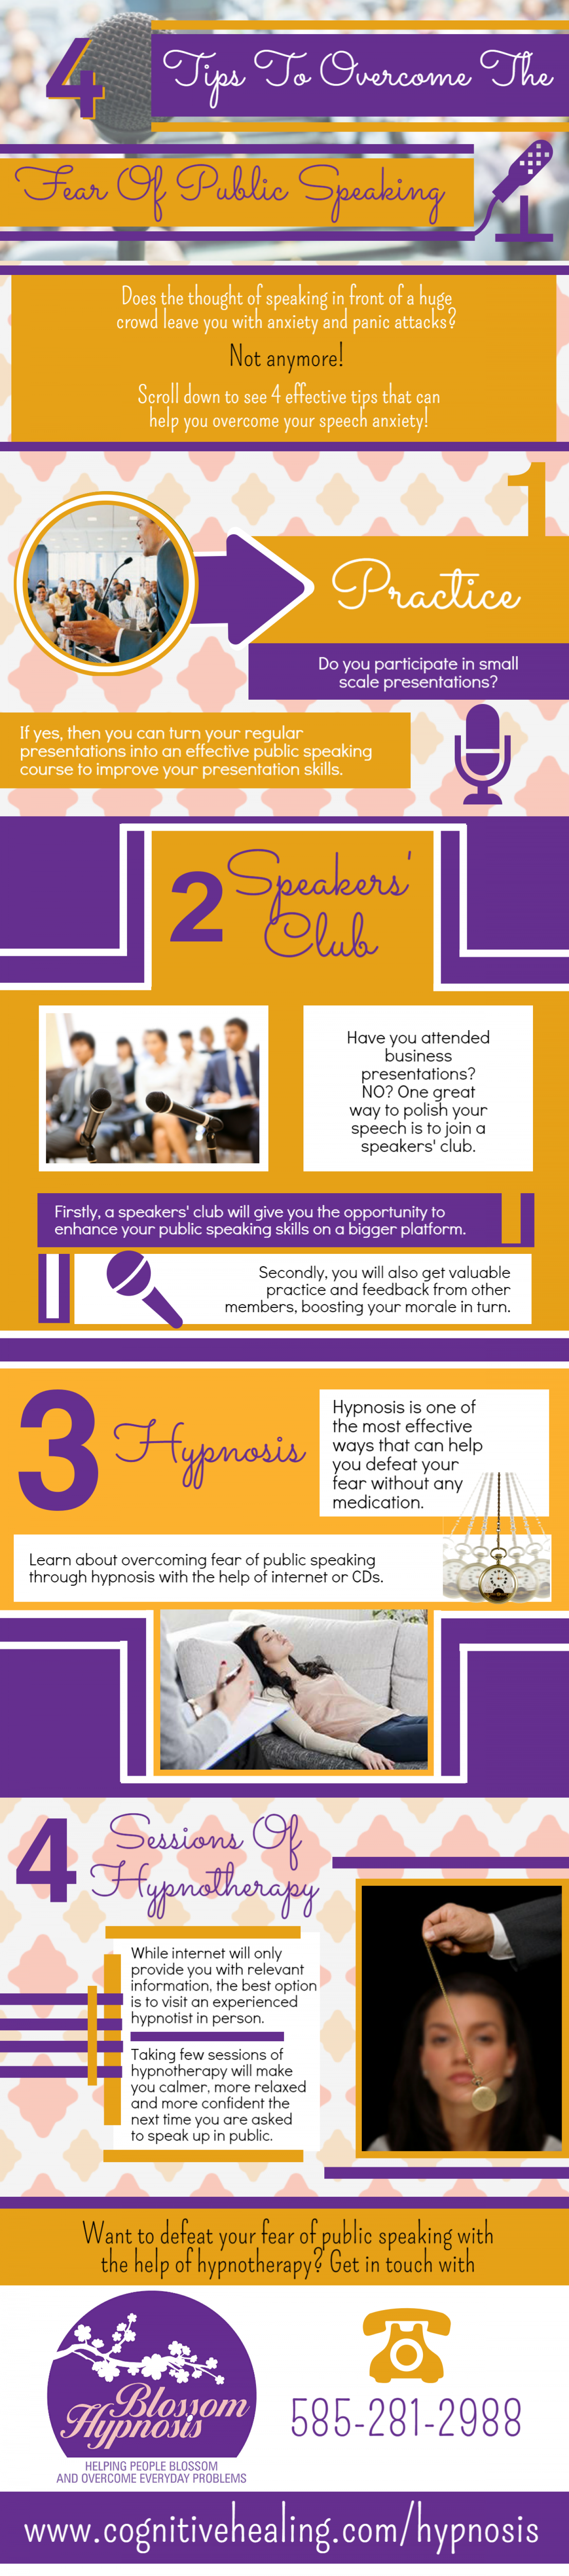 4 Tips to overcome the fear of public speaking Infographic